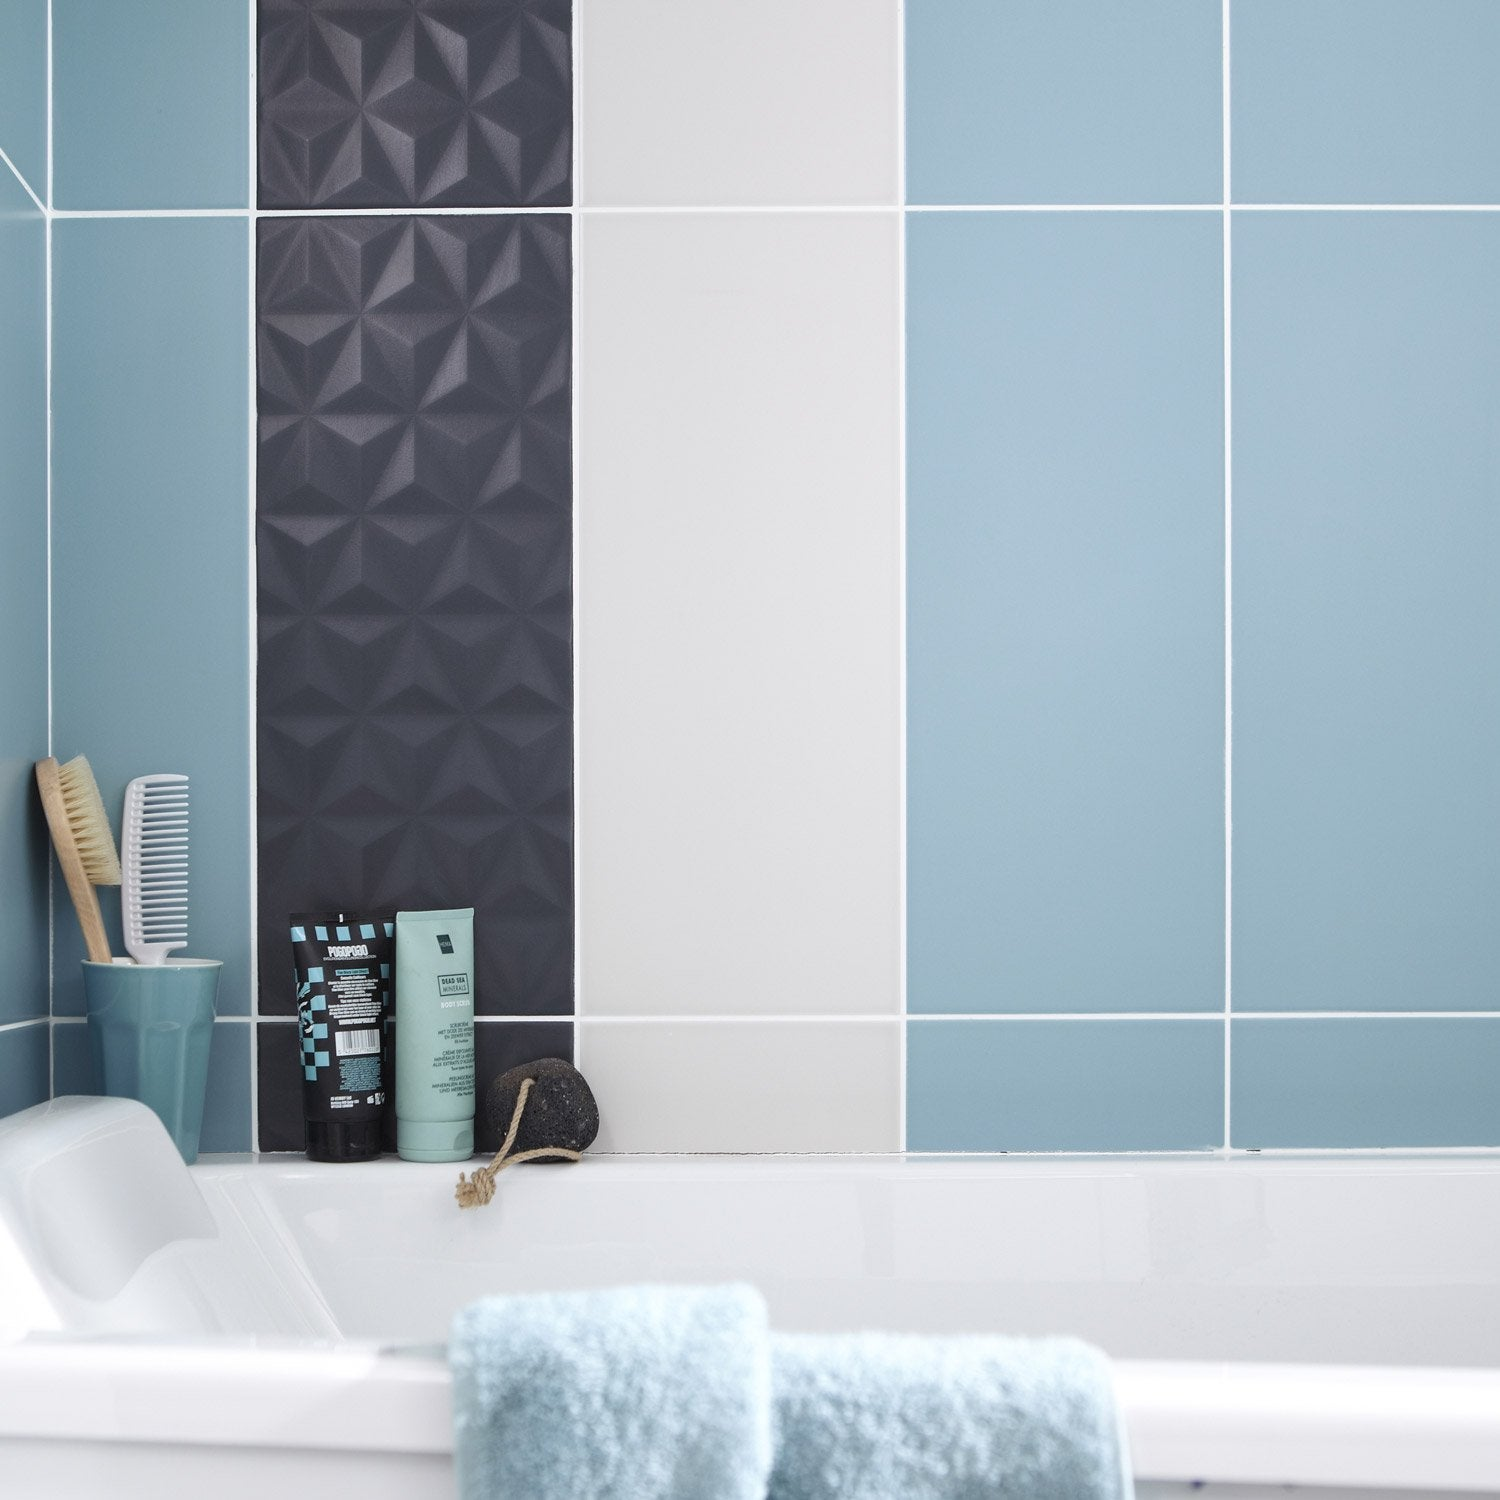 Fa ence mur bleu baltique n 3 loft x cm for Enduit decoratif salle de bain leroy merlin